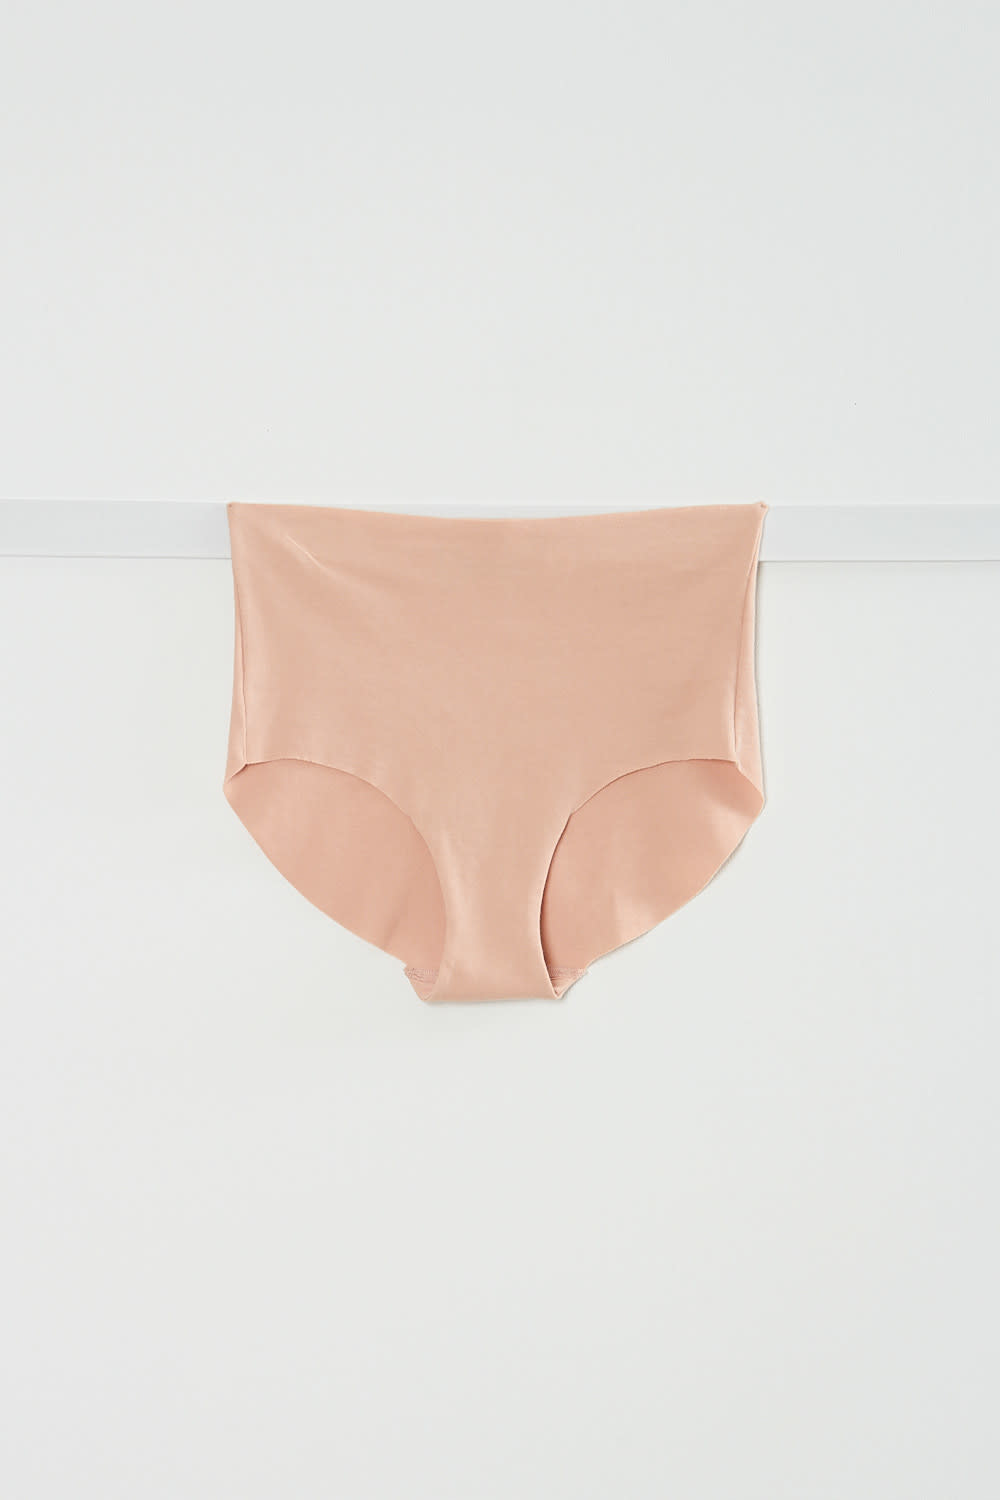 hanro - Invisible cotton full brief